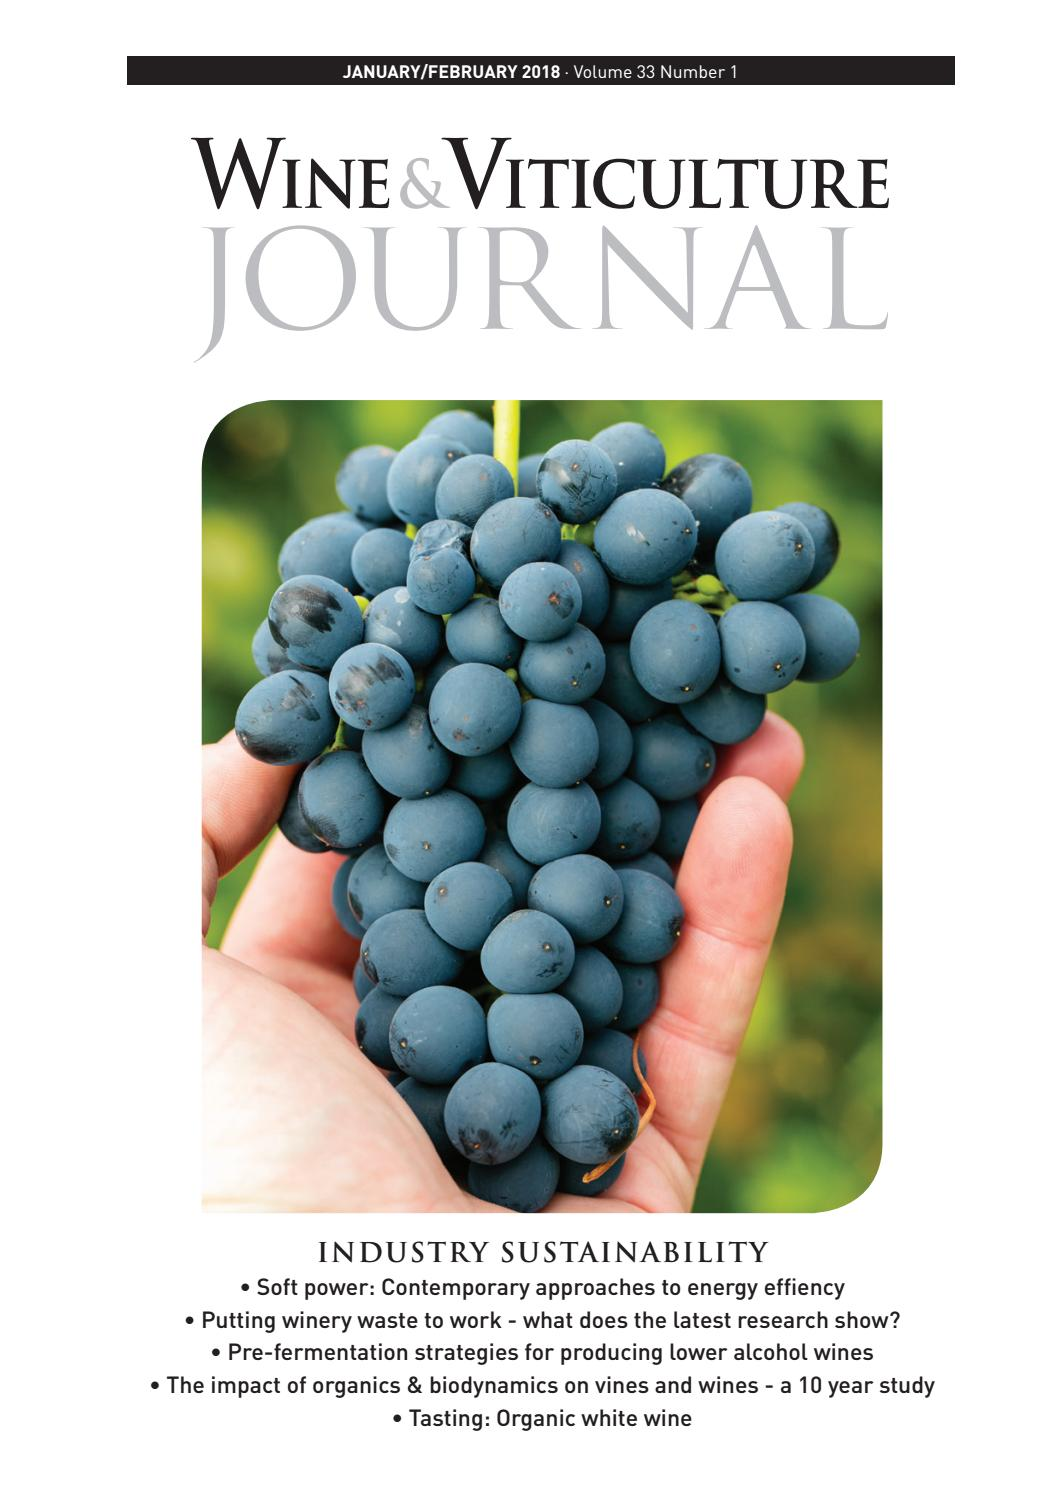 Wine & Viticulture Journal - January/February 2018 by ...